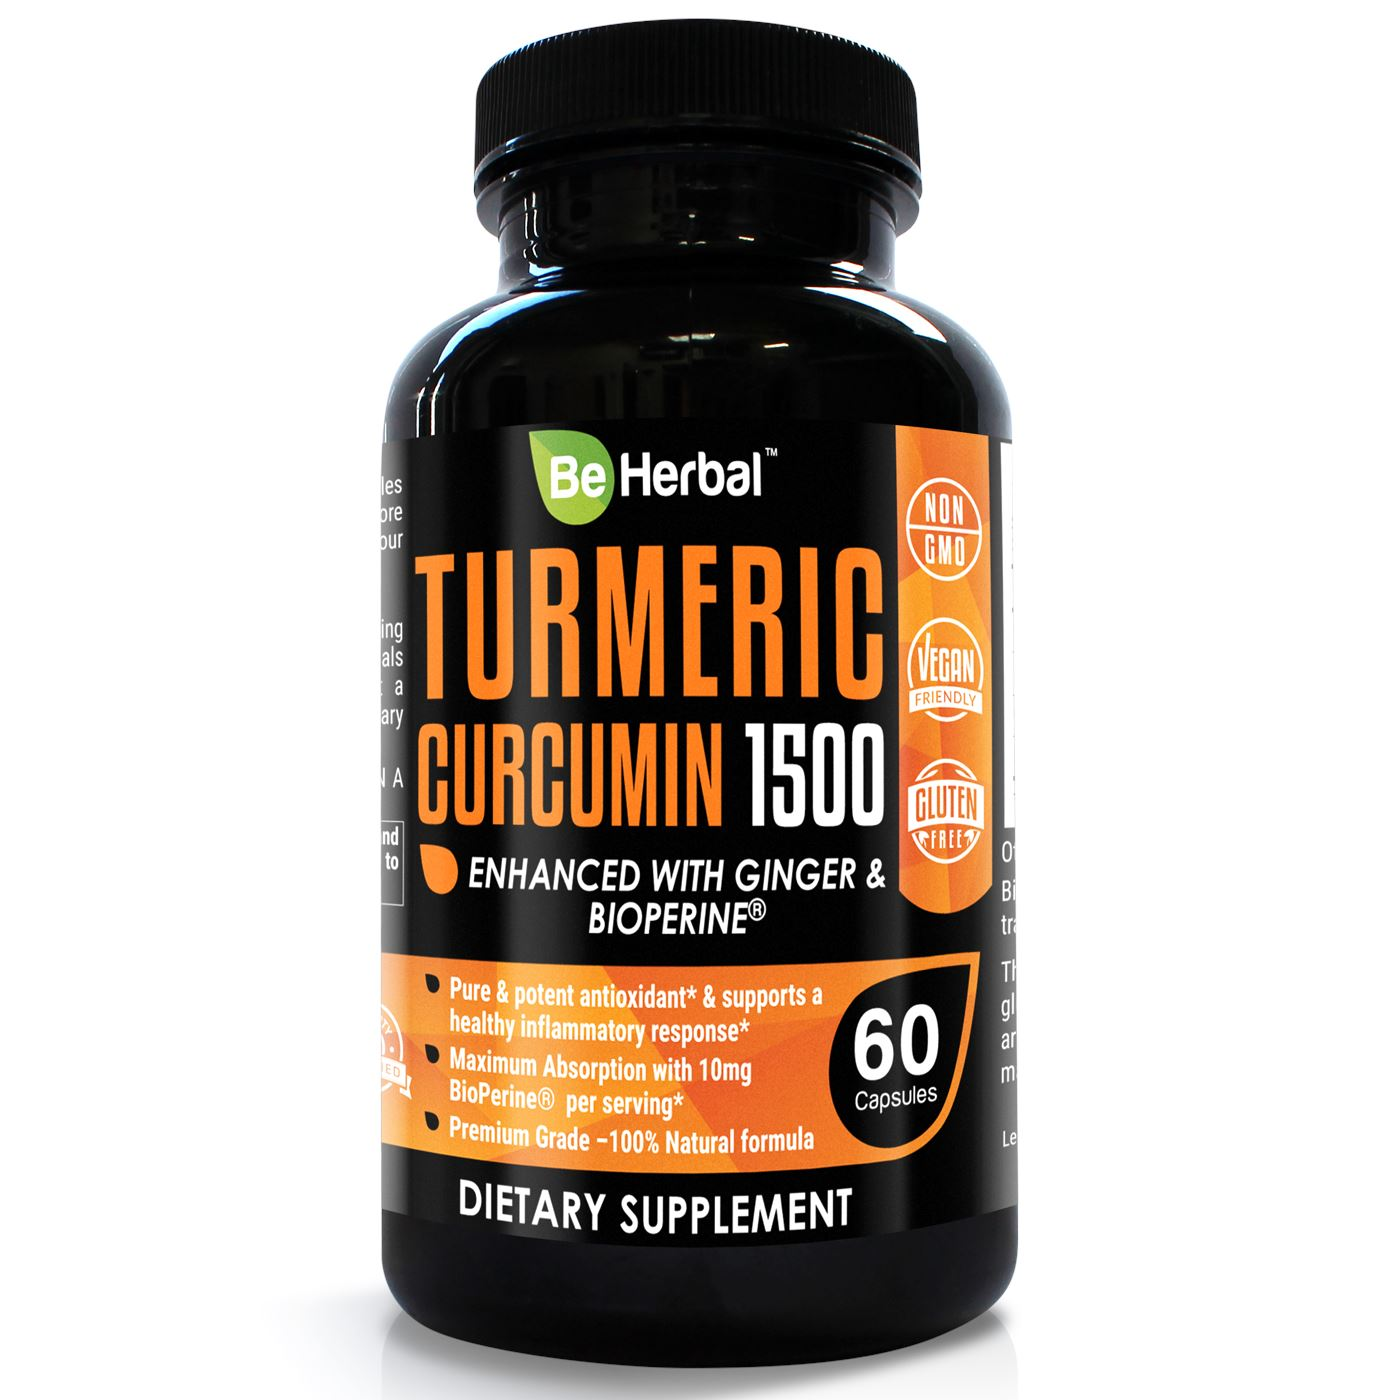 Premium Organic Turmeric Curcumin with BioPerine - 1500mg - 60 Veg Capsules Herbal Supplements Be Herbal